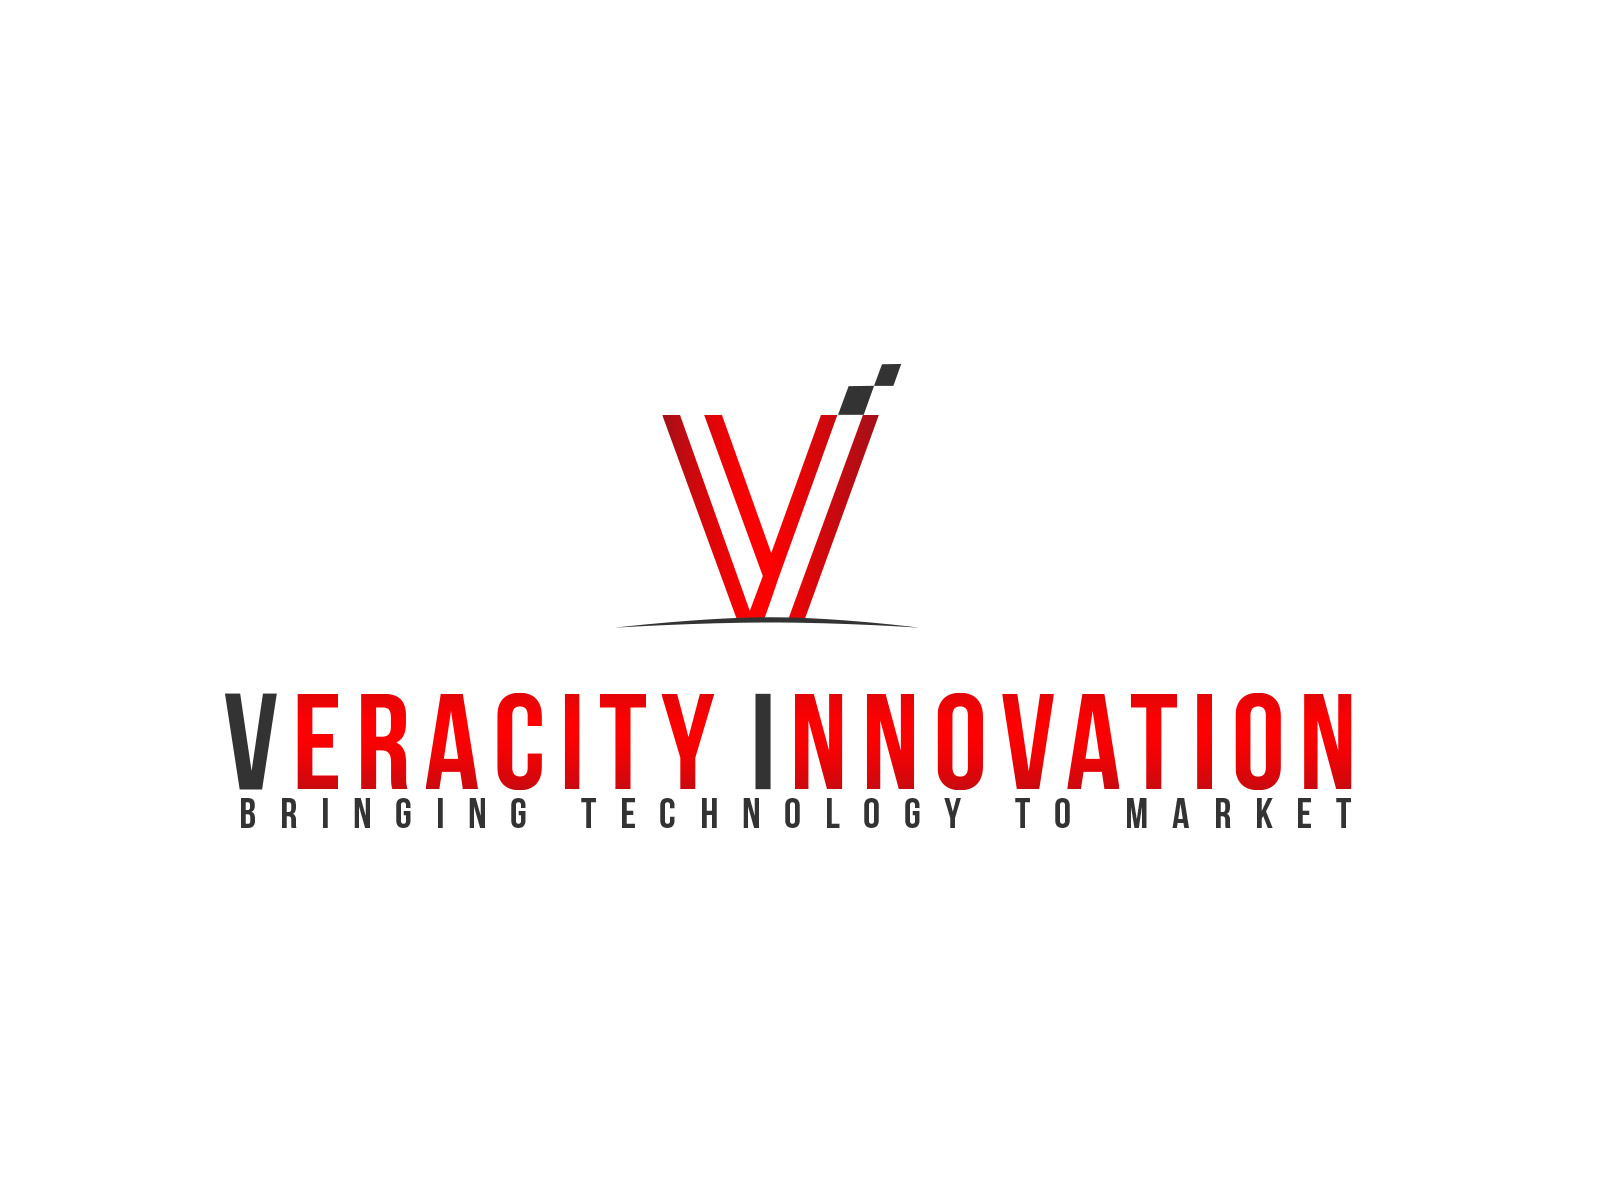 Logo Design by olii - Entry No. 306 in the Logo Design Contest Creative Logo Design for Veracity Innovation, LLC.